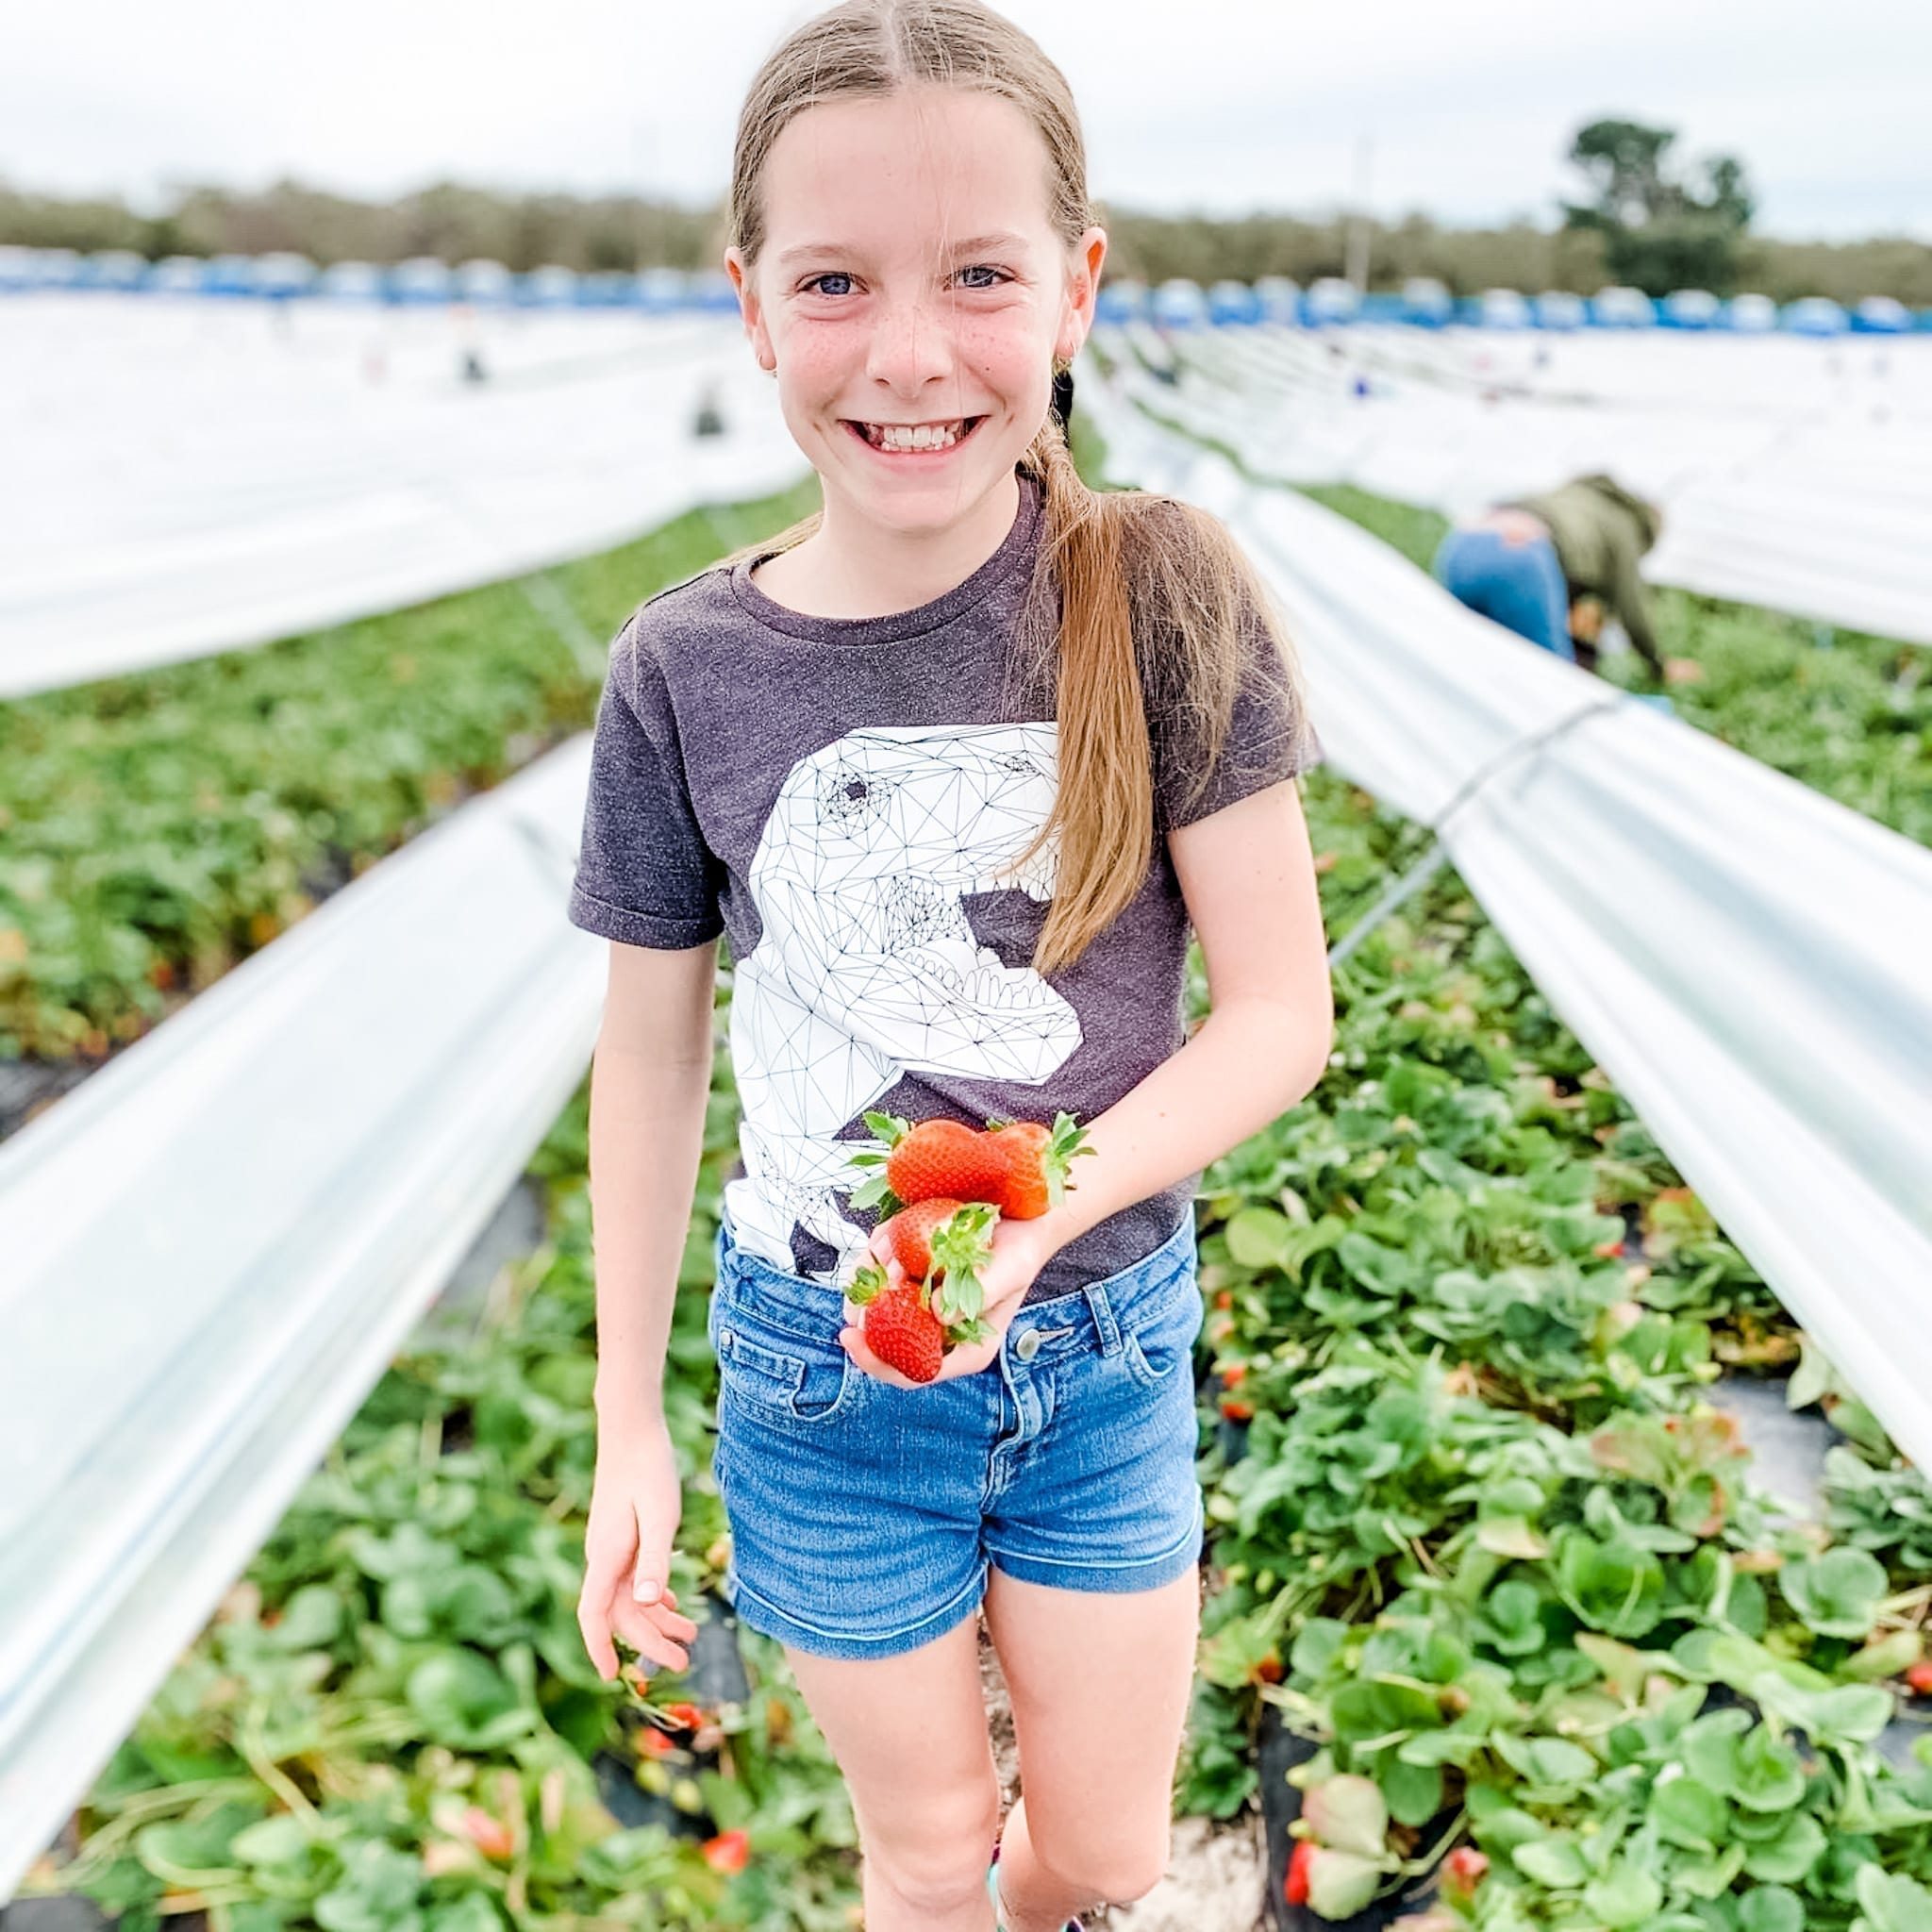 H&N Strawberry Farm